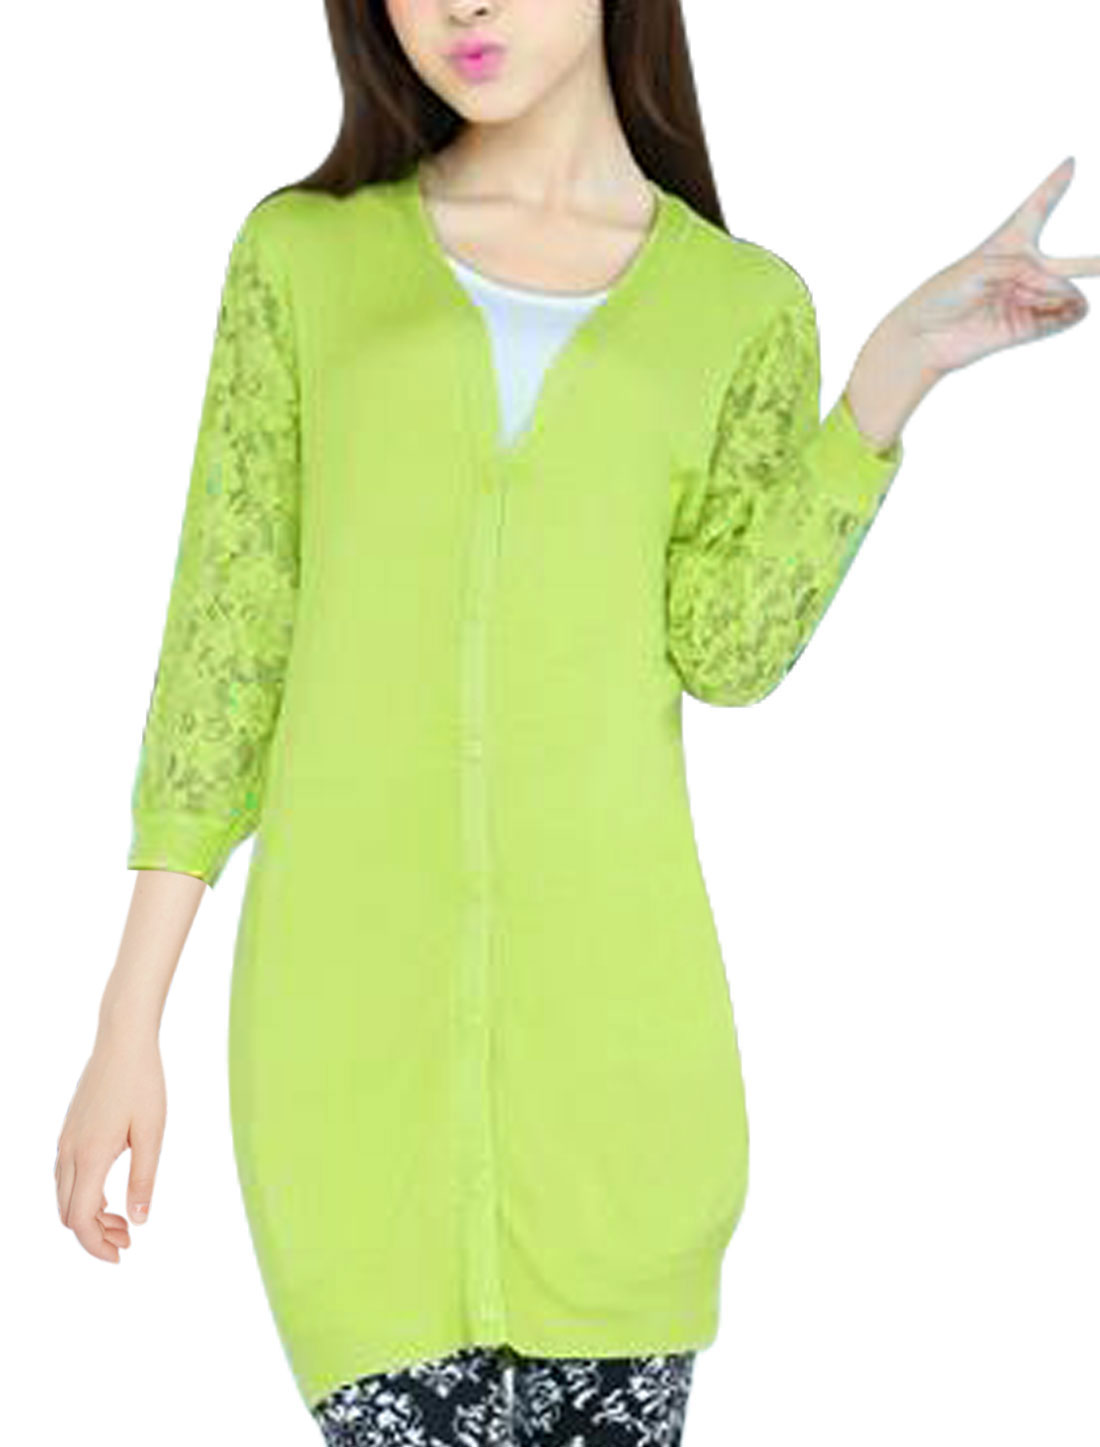 Women Single Breasted 3/4 Sleeve Ribbed Trim Chic Knit Cardigan Green Yellow S